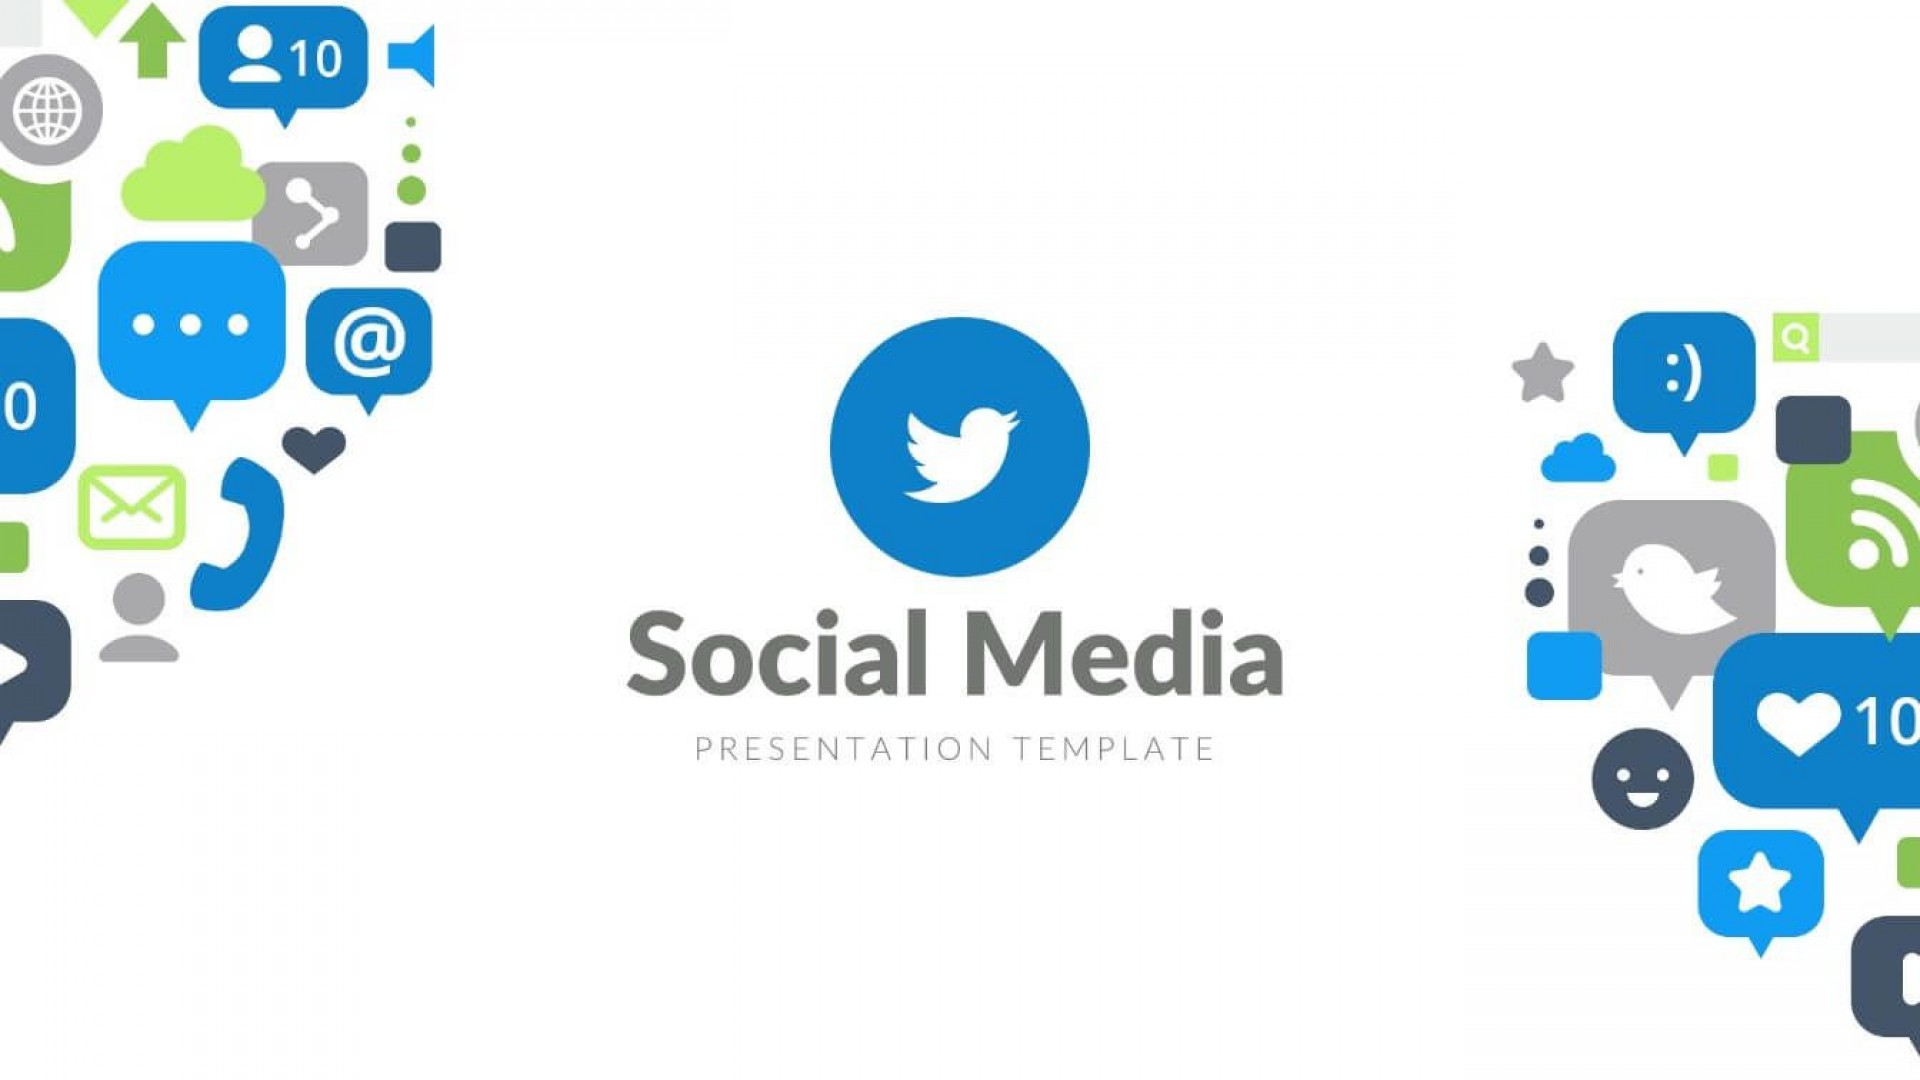 007 Stunning Social Media Ppt Template Free Photo  Download Report Powerpoint1920